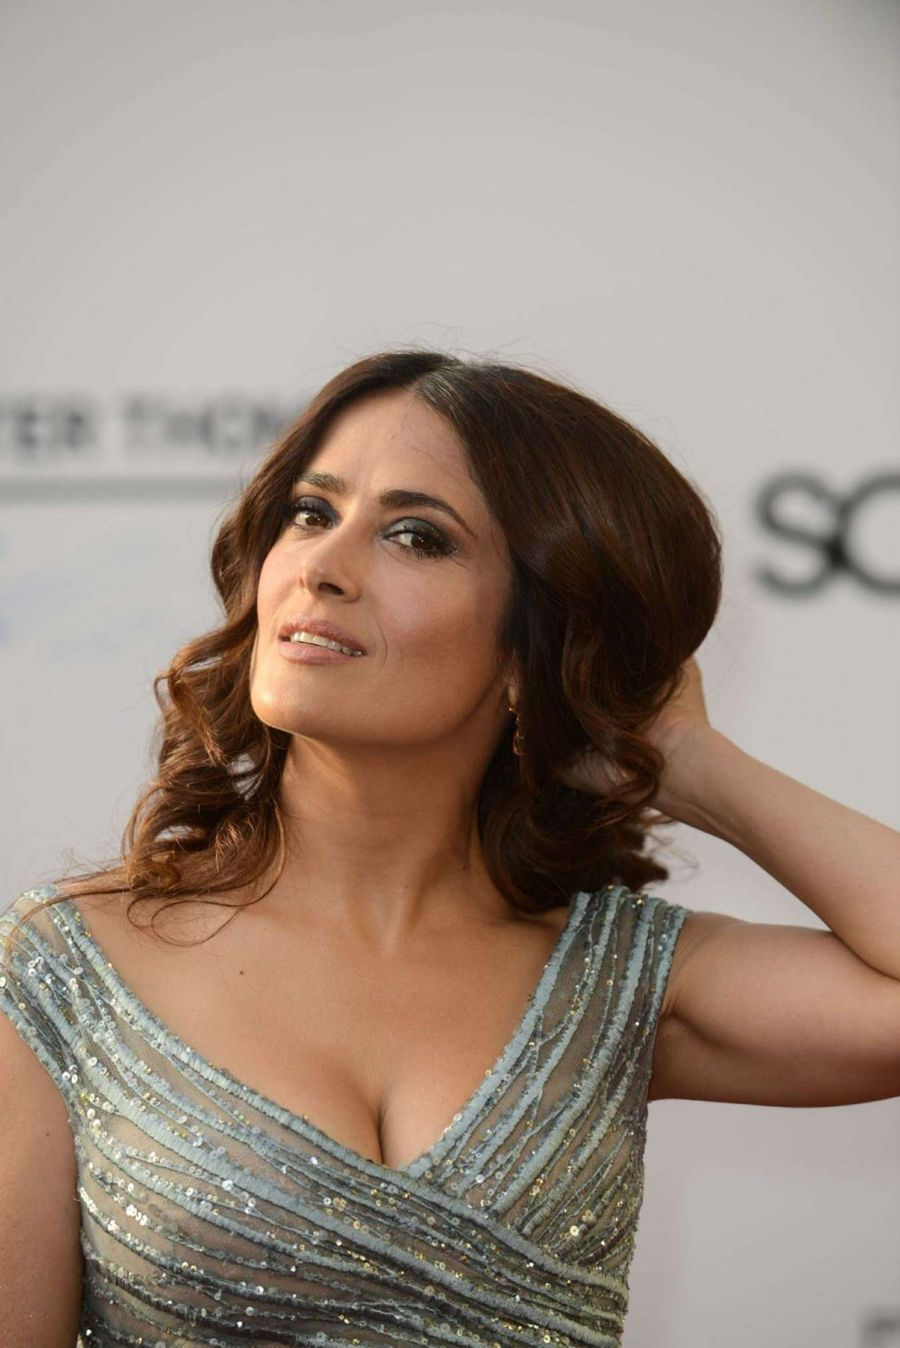 Salma Hayek looks utterly exquisite in Silver Gown